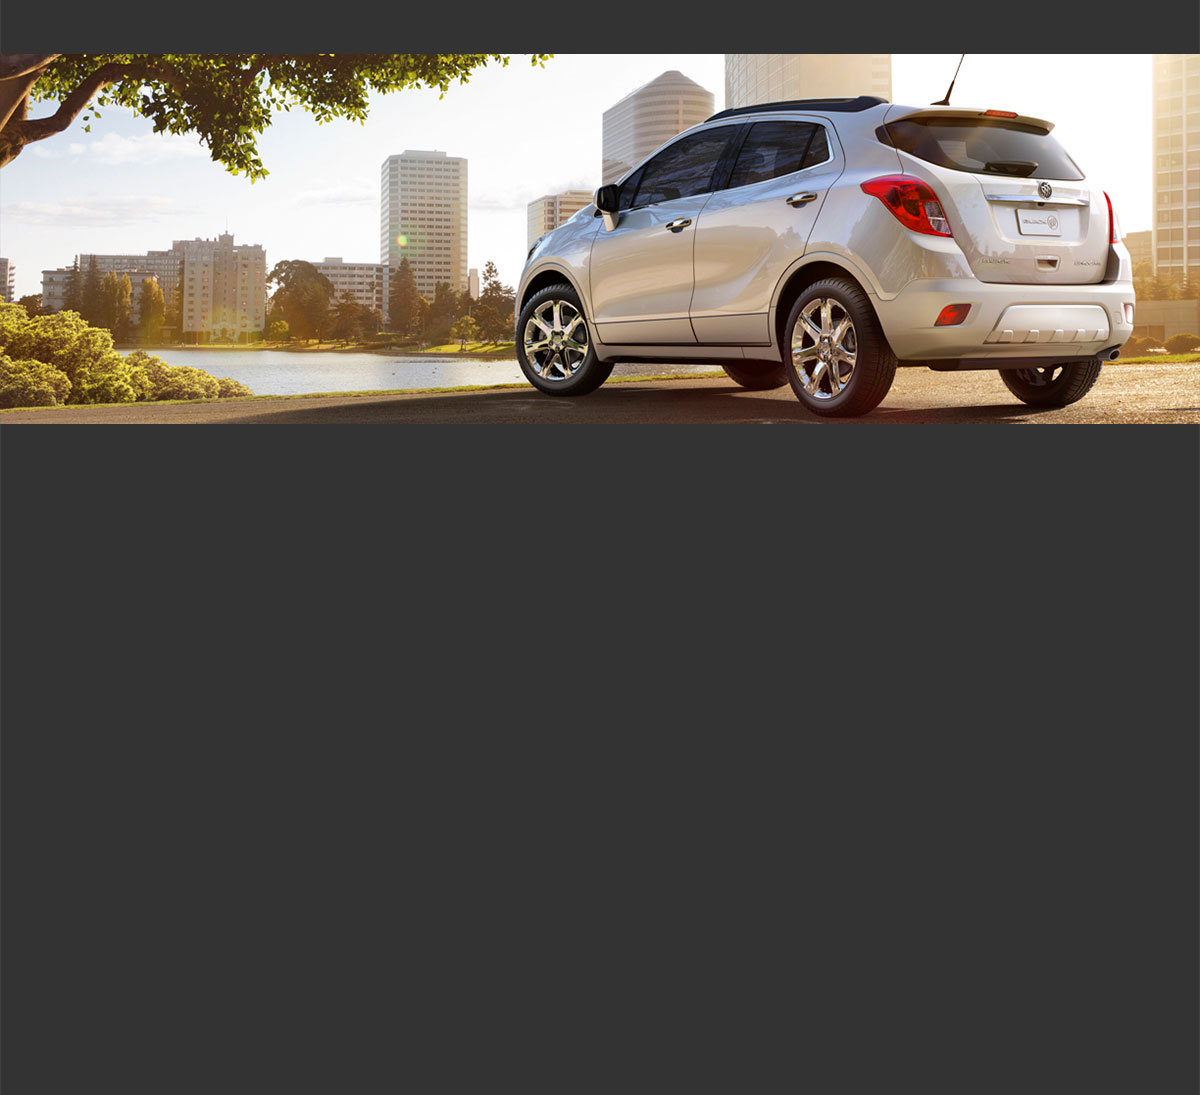 Toyota Dealer Sioux Falls: Used Cars Milaca Auto Financing Bock MN Dalbo MN Central